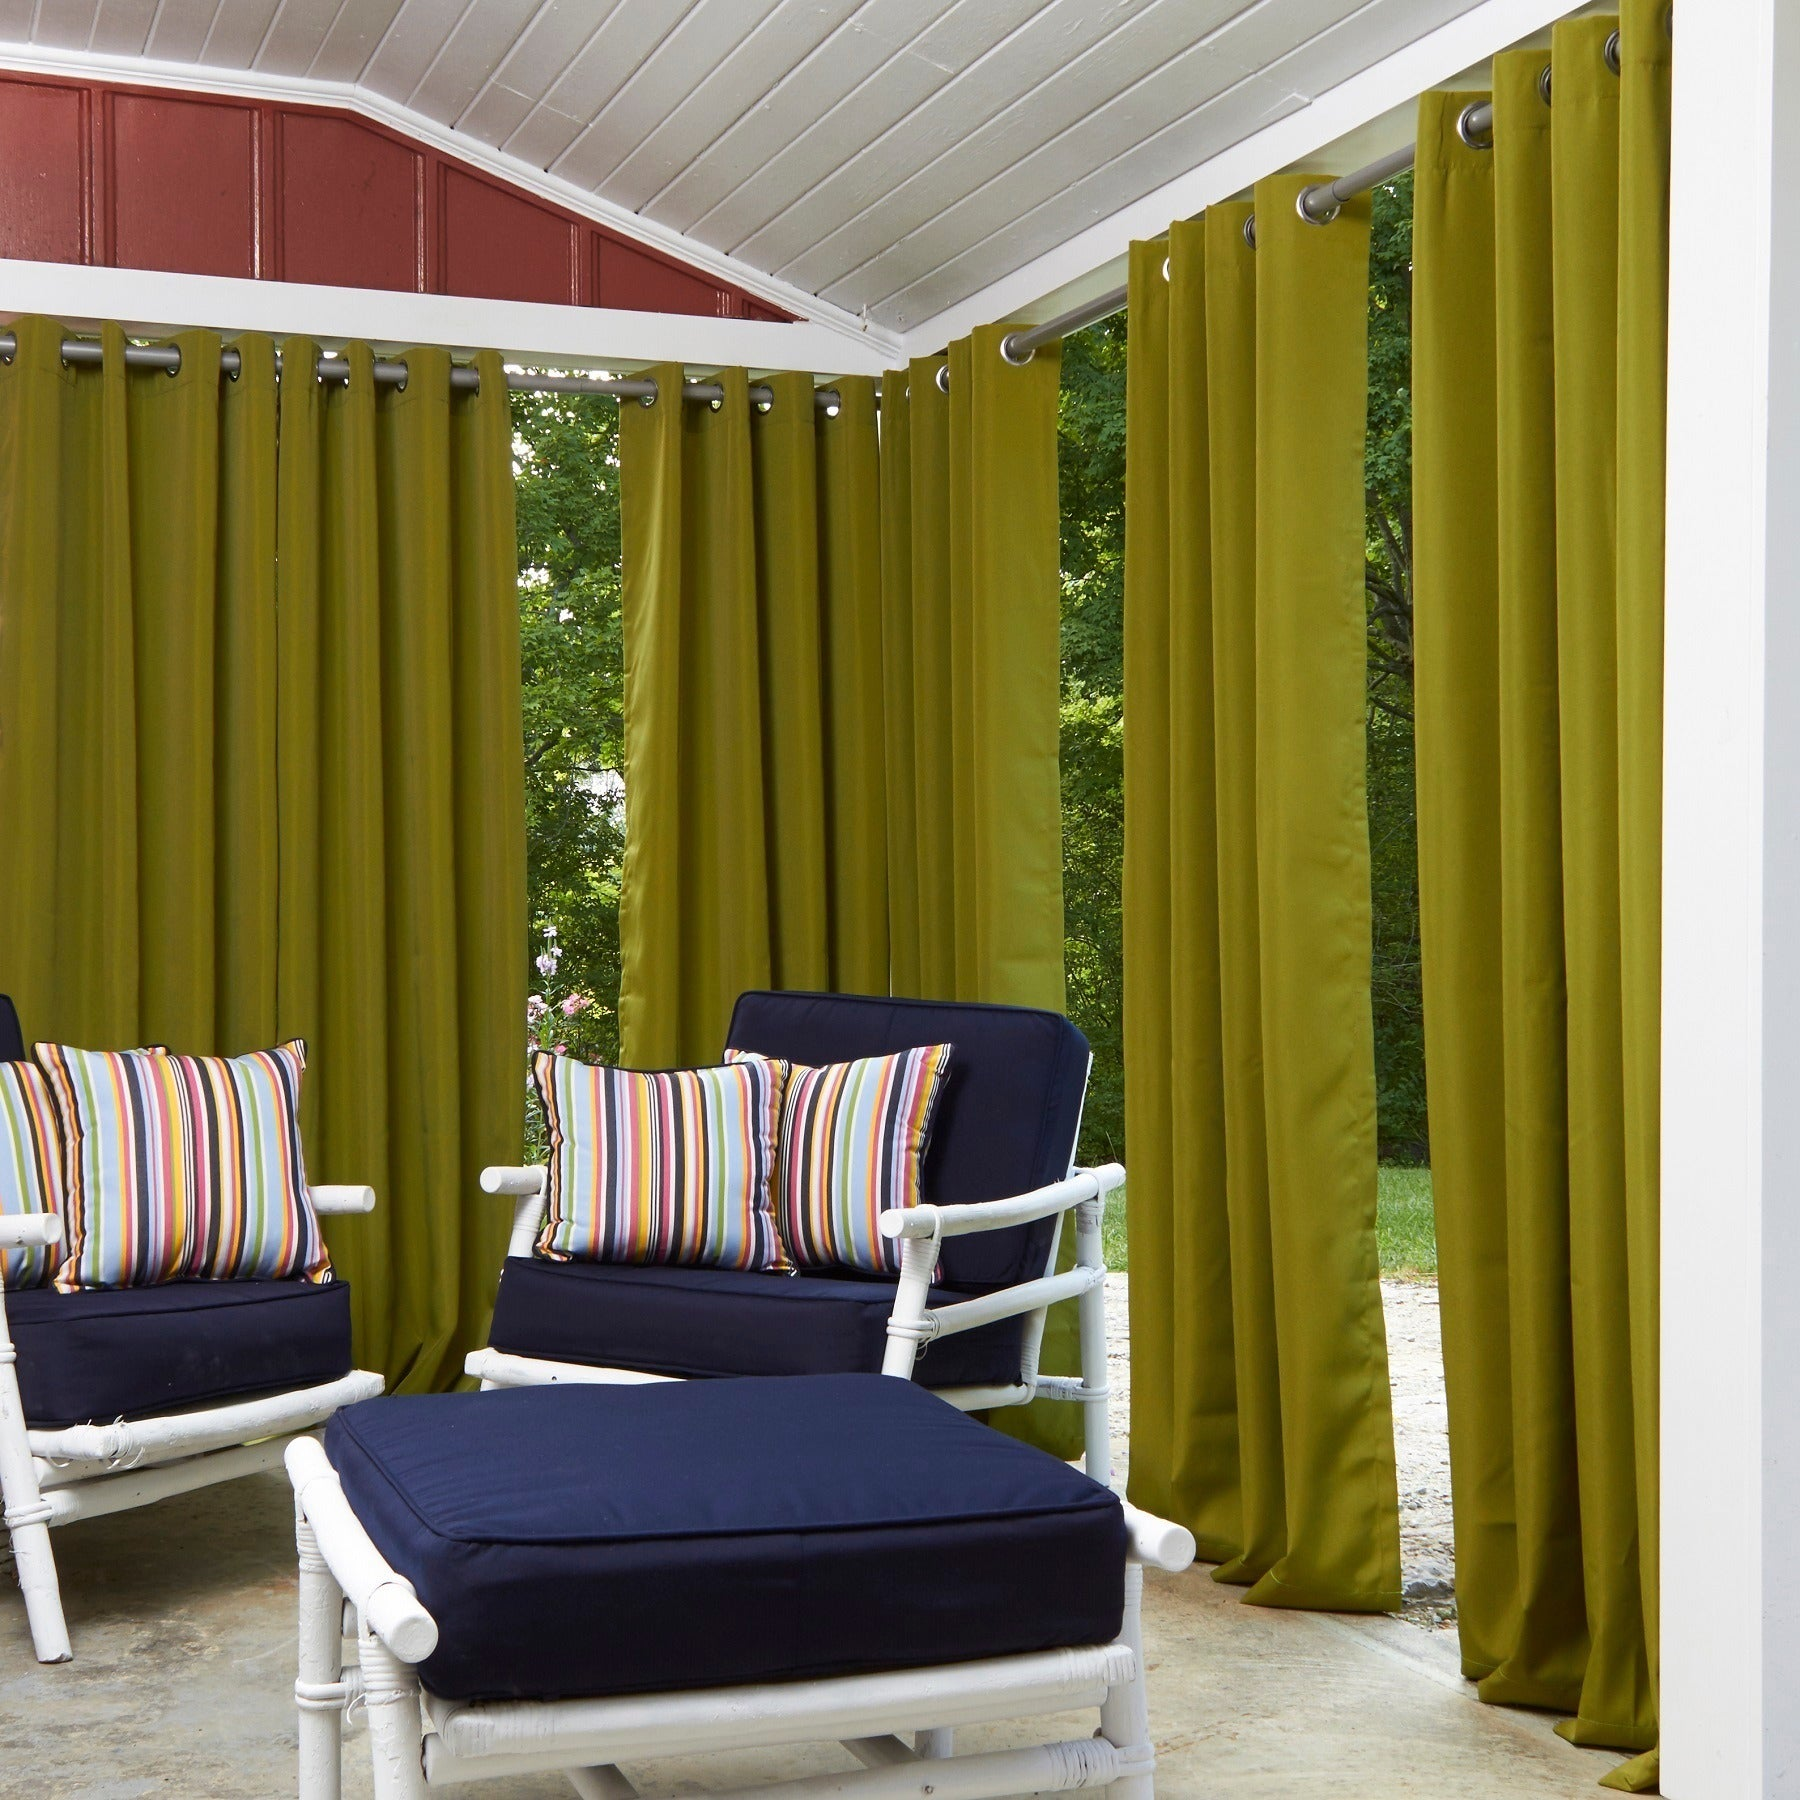 window with dp panels com garden inch curtains outdoor curtain grommets by amazon sunbrella treatment hatteras mist x outdoors